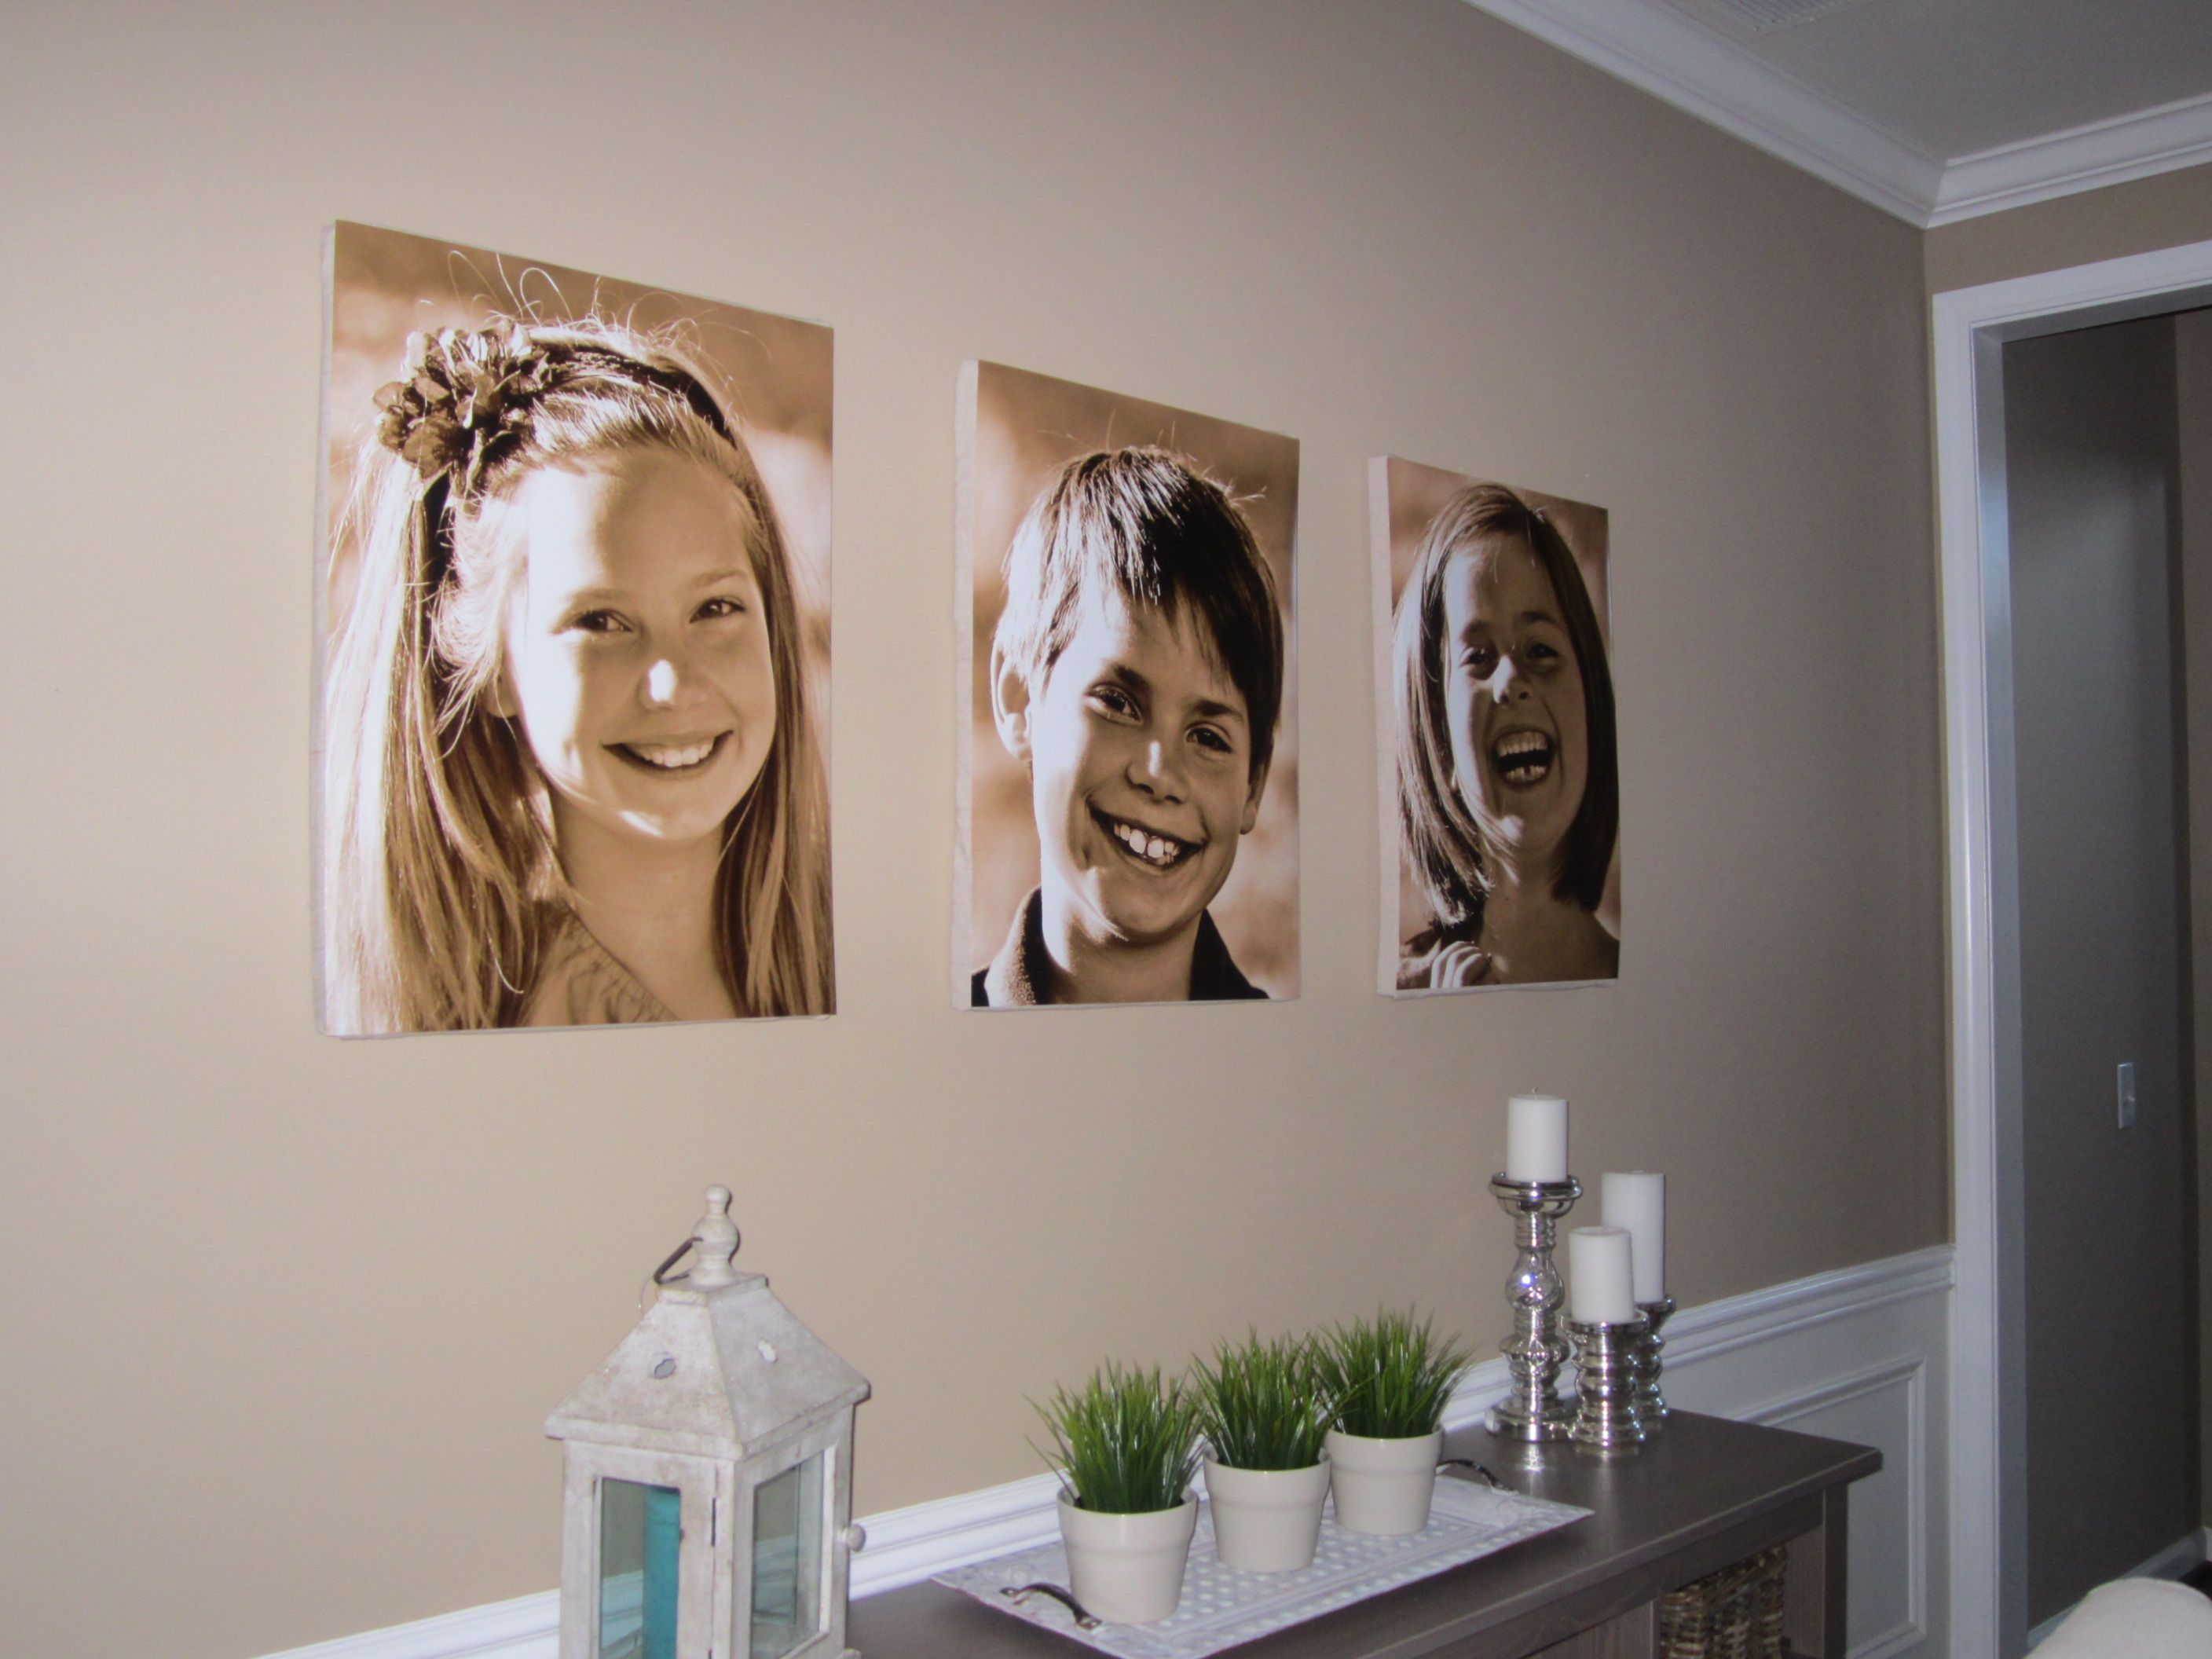 Print photos on poster board